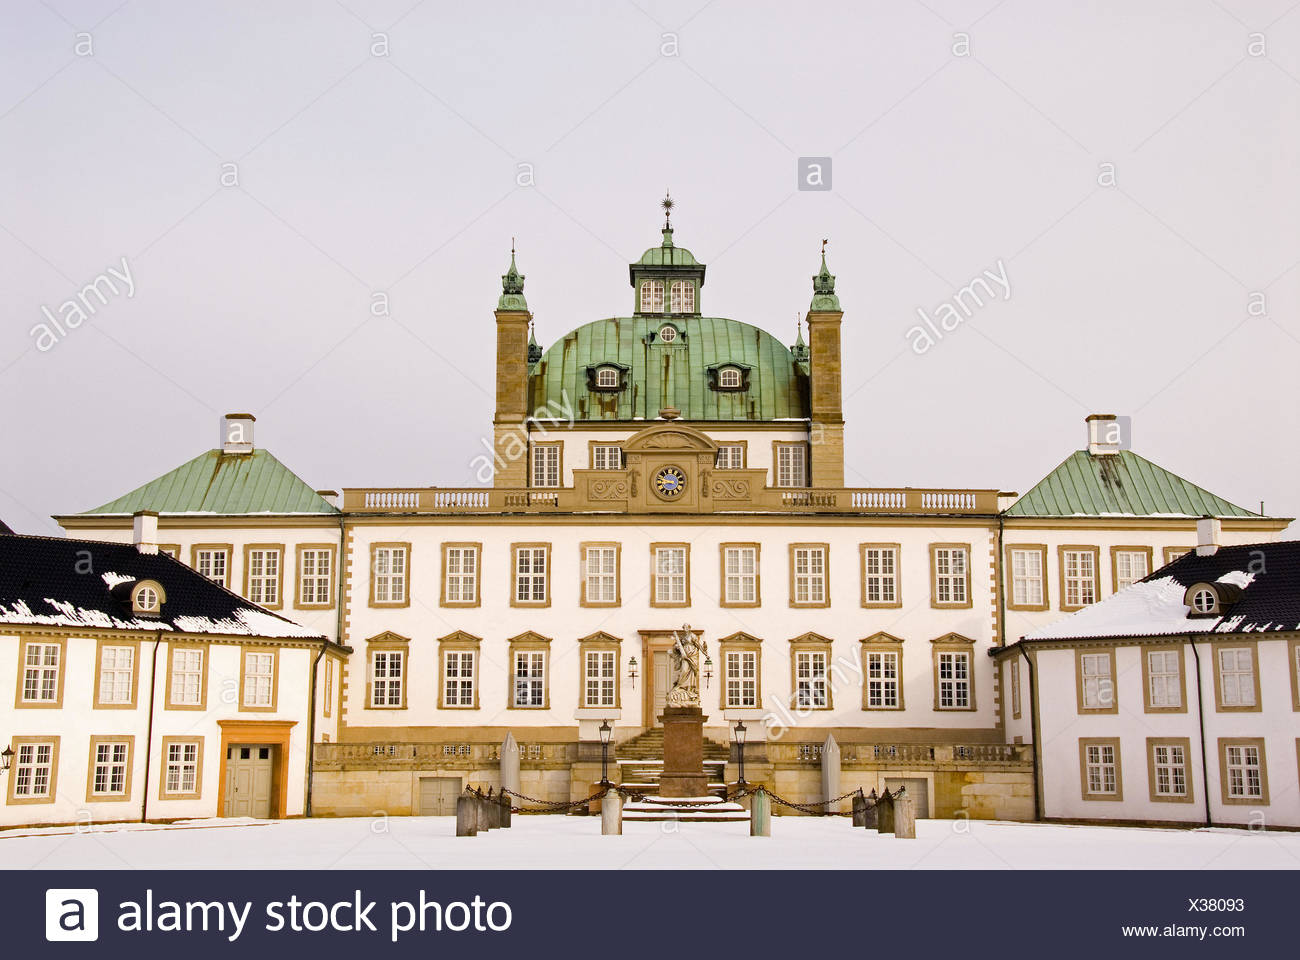 Fredensborg castle in Fredensborg Sealans, Denmark. Summer castle and summer residens to Her majesty Queen Margrethe the 2 of - Stock Image